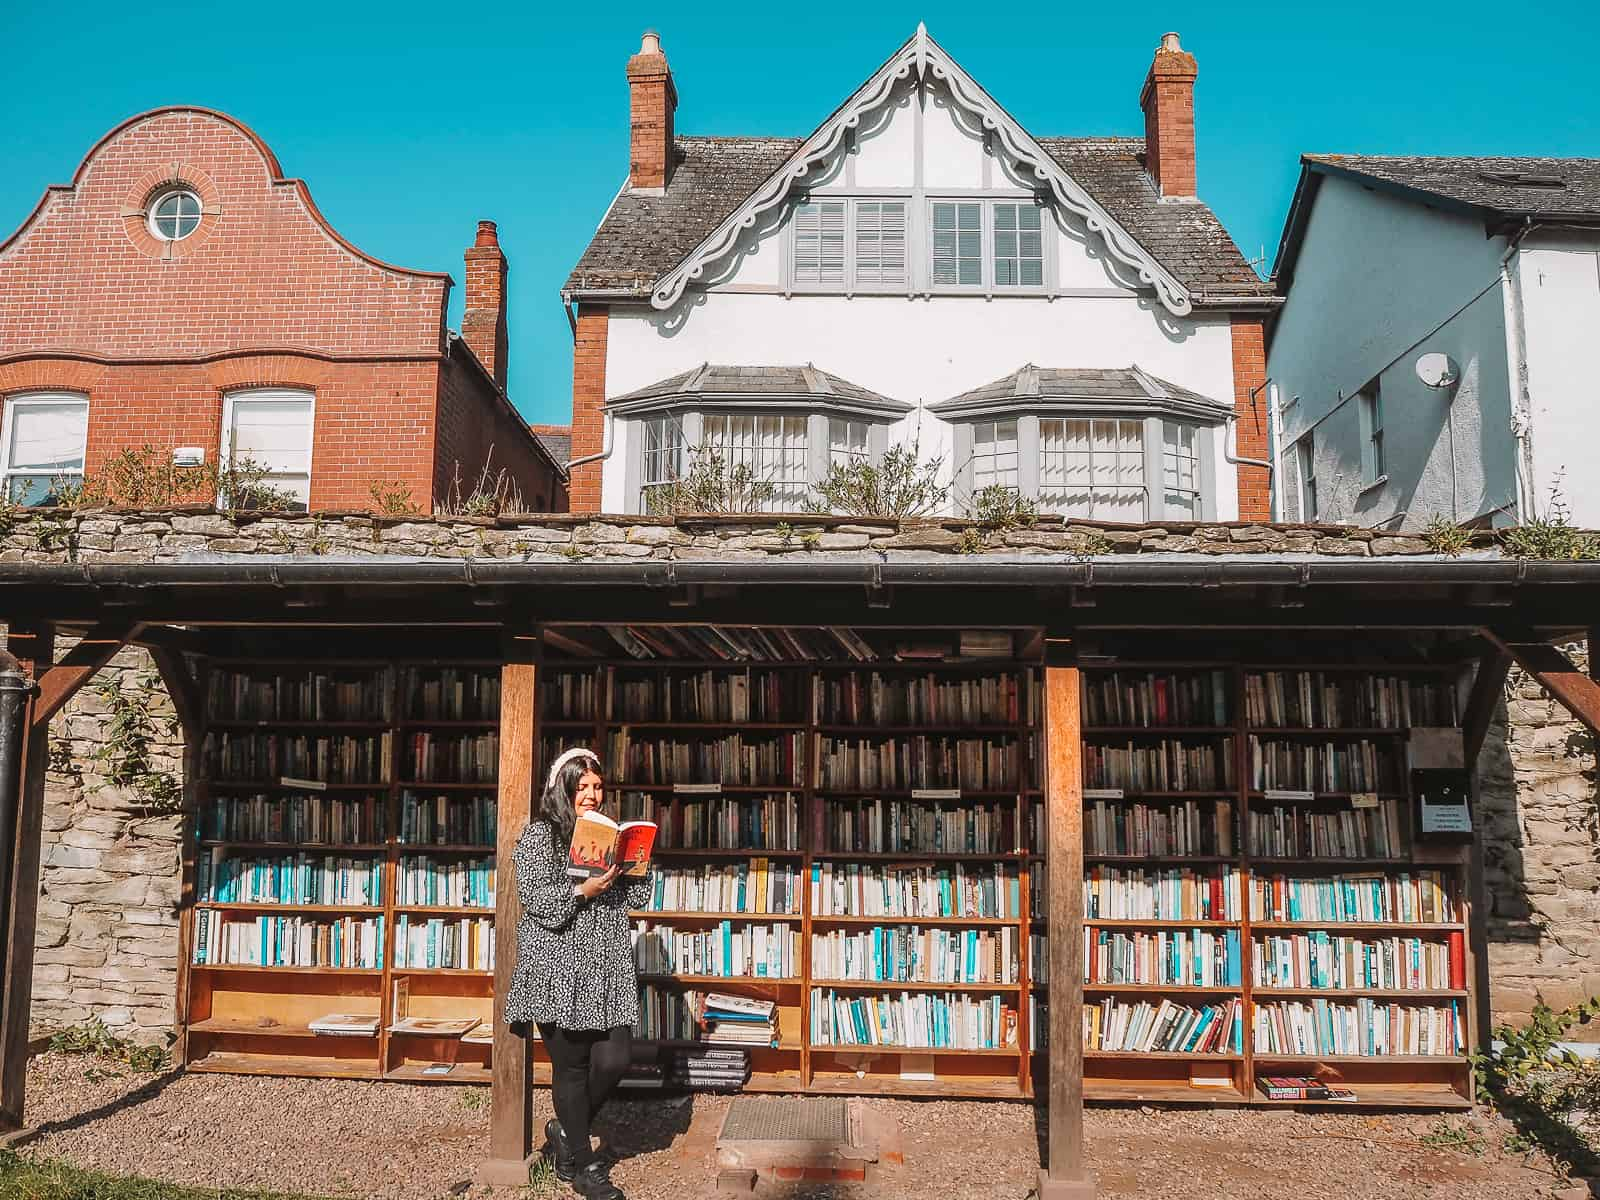 Honesty Hay Castle Bookshop The book town of Hay-on-Wye Brecon Beacons